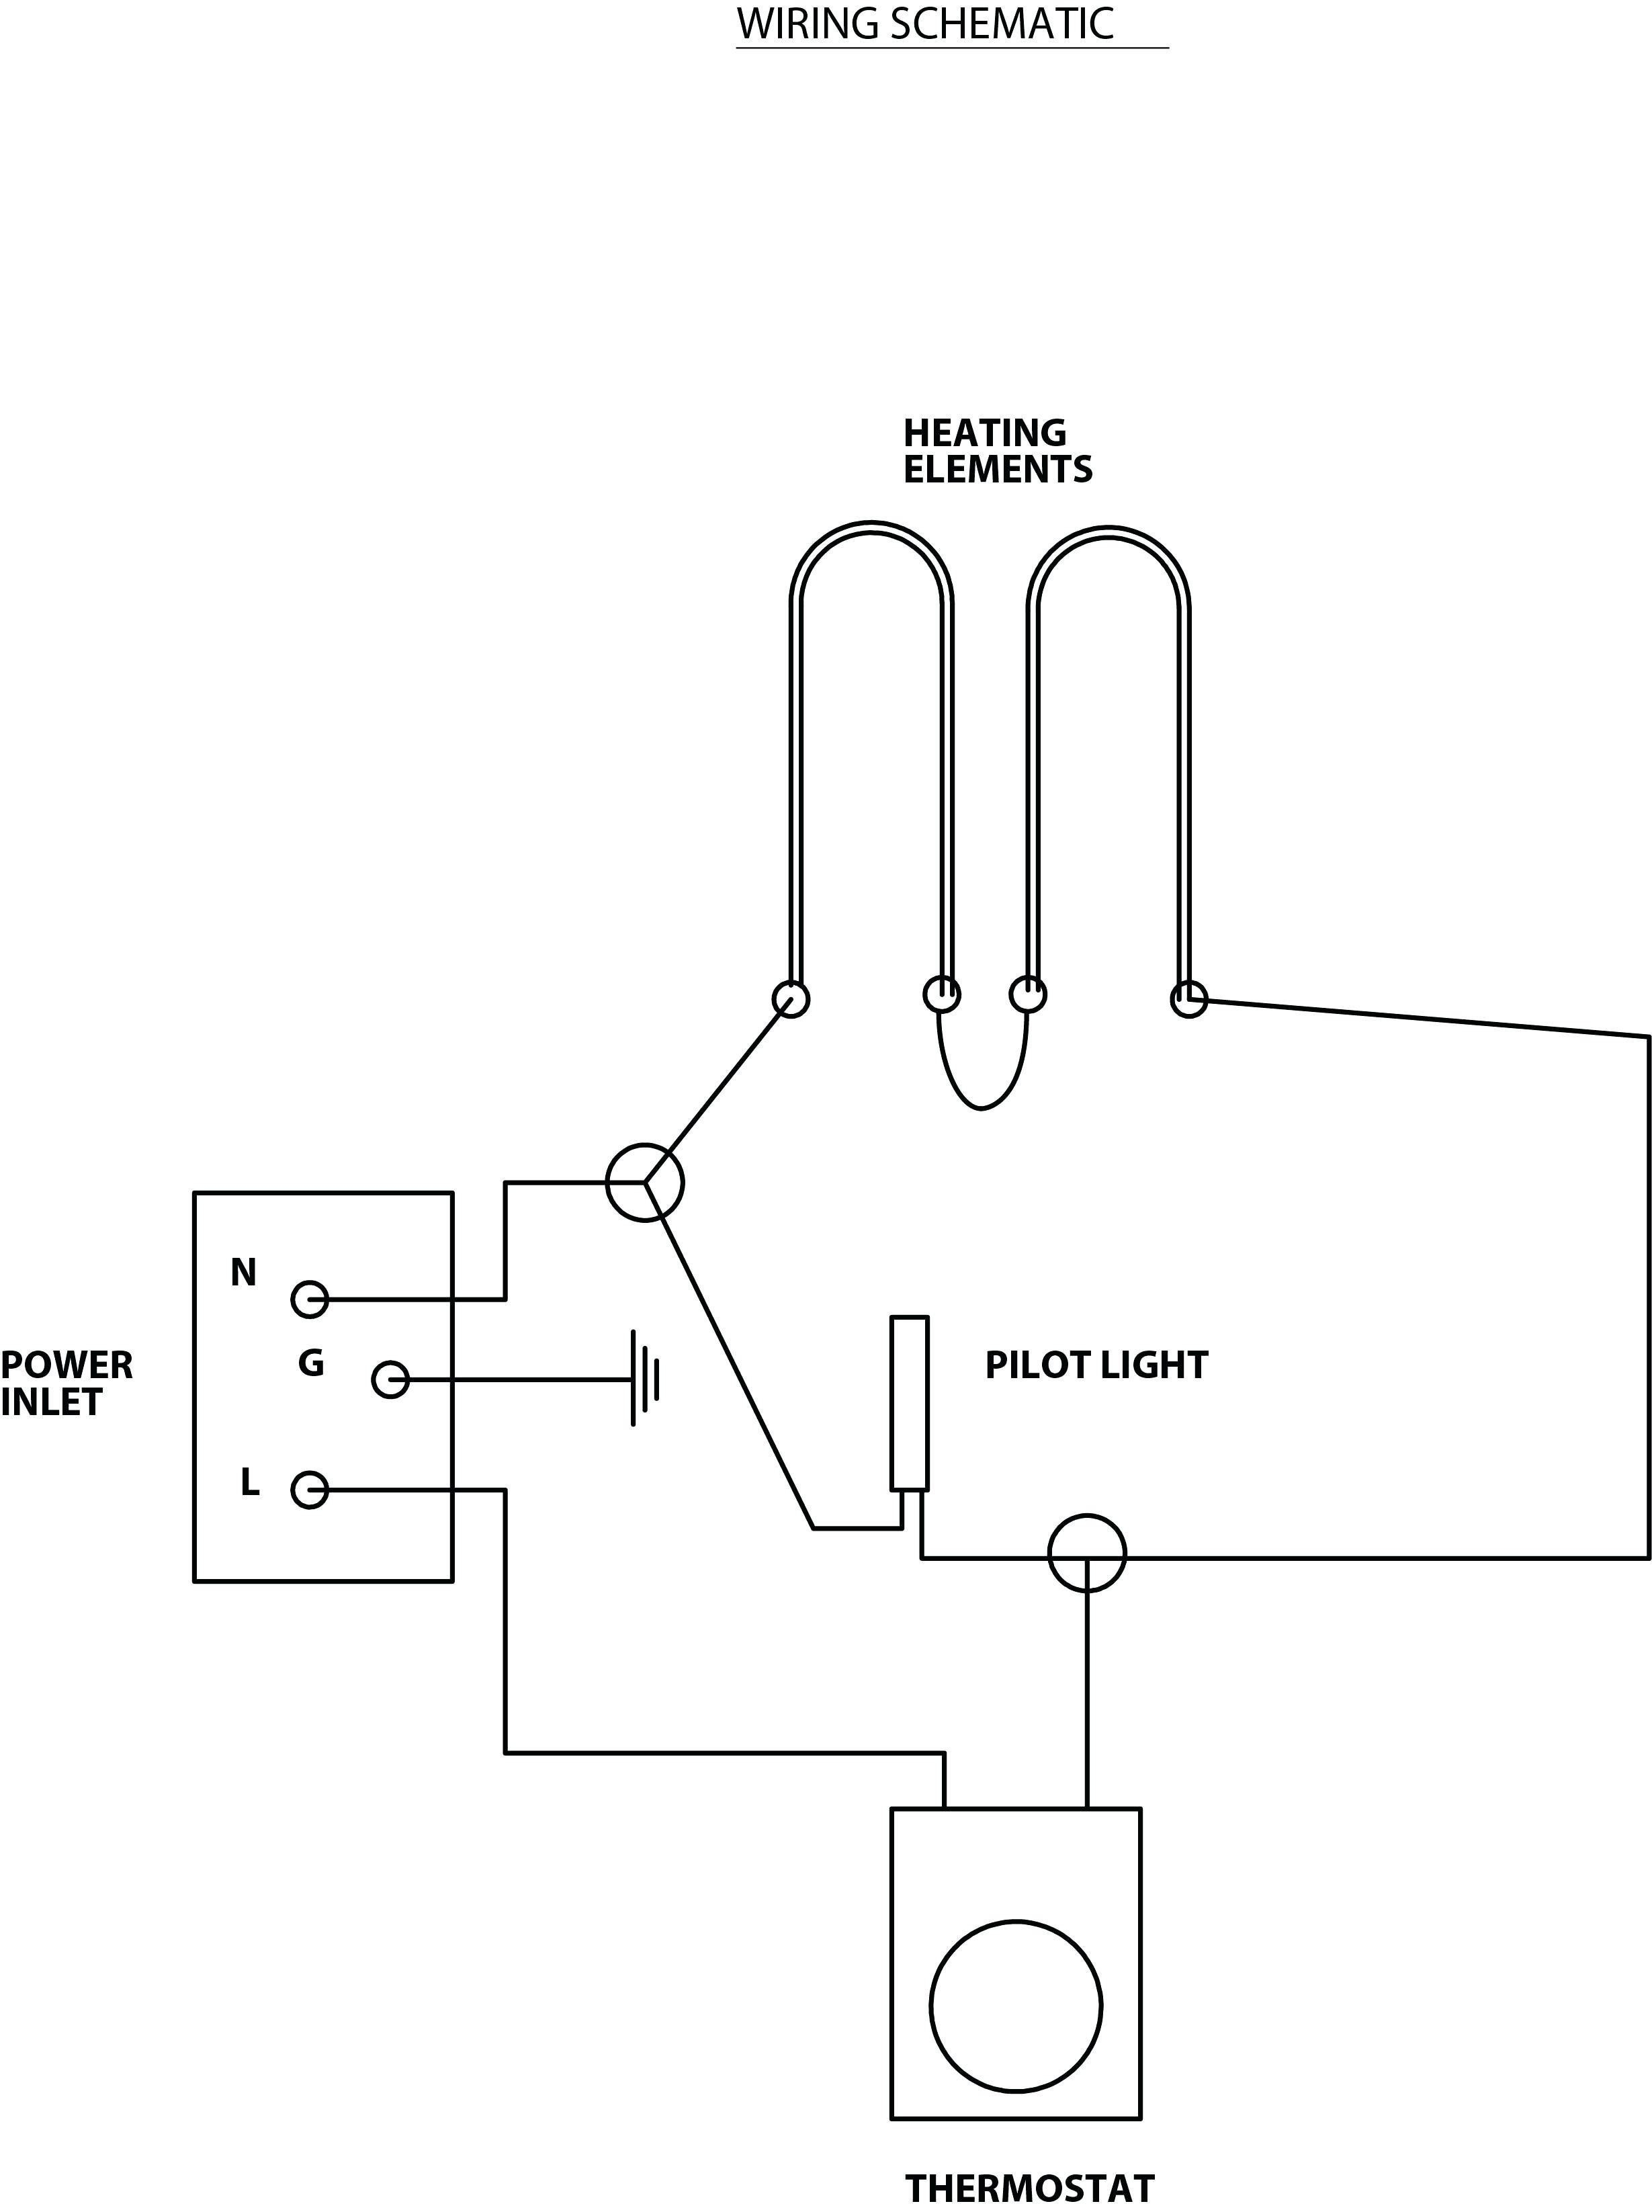 Double Pole 240 Volt Baseboard Heater Wiring Diagram from i1.wp.com